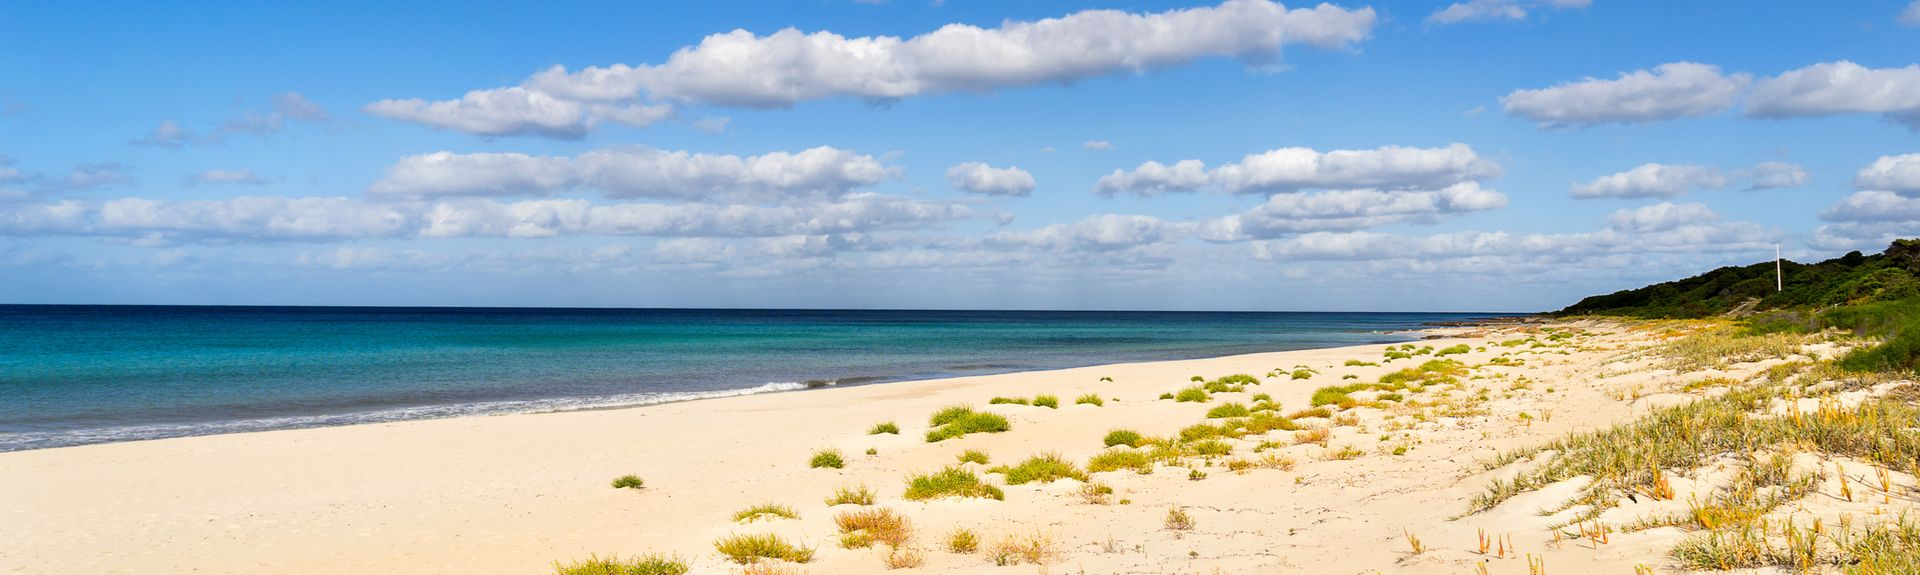 Eagle Bay, Busselton, Australie-Occidentale, Australie